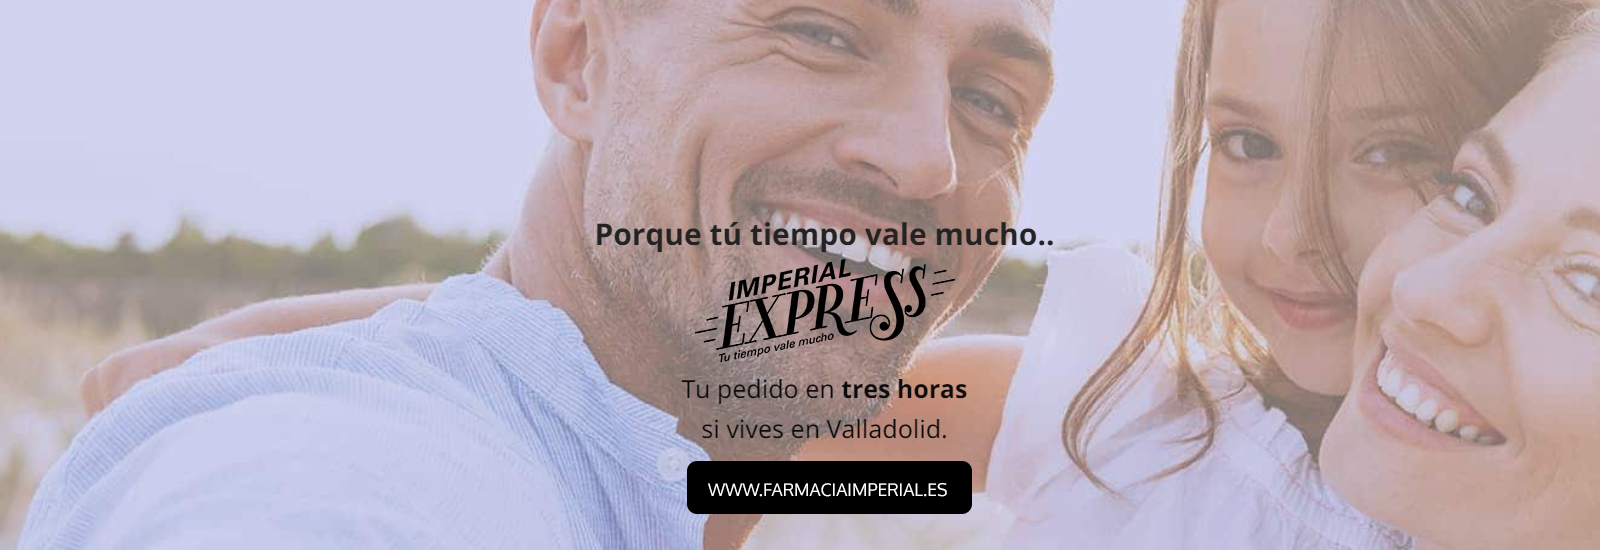 Farmacia en valladolid,ortopedia especializada